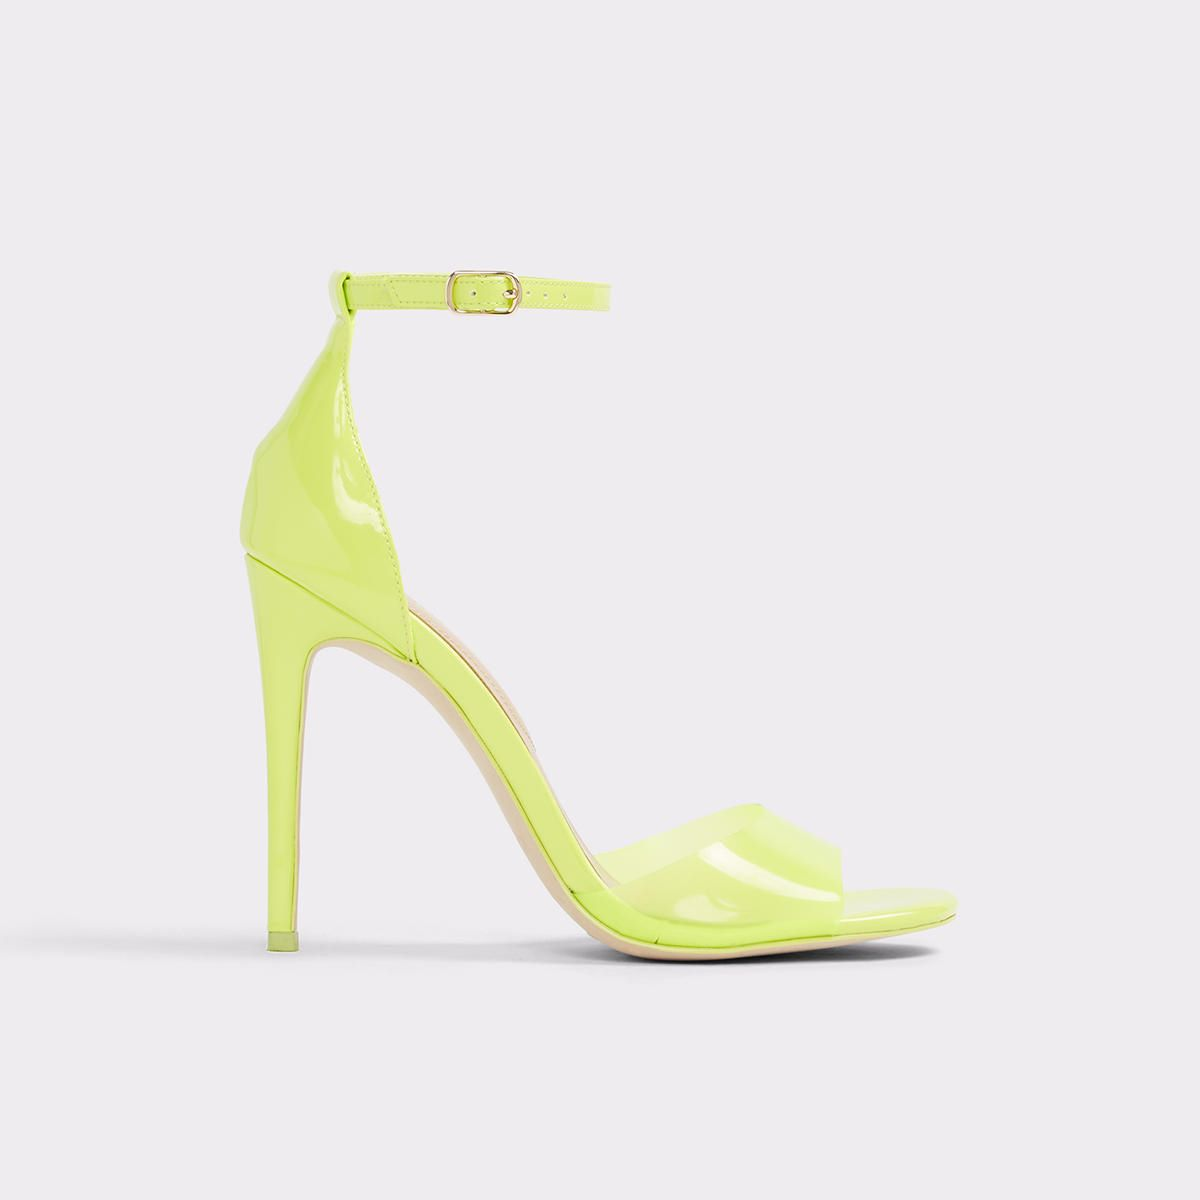 e72fb2645a1e Ligoria This two piece-sandal is a clear winner for notice-me style. Its  curvaceous silhouette and ankle-slimming strap inject a dose of glamour in  any ...